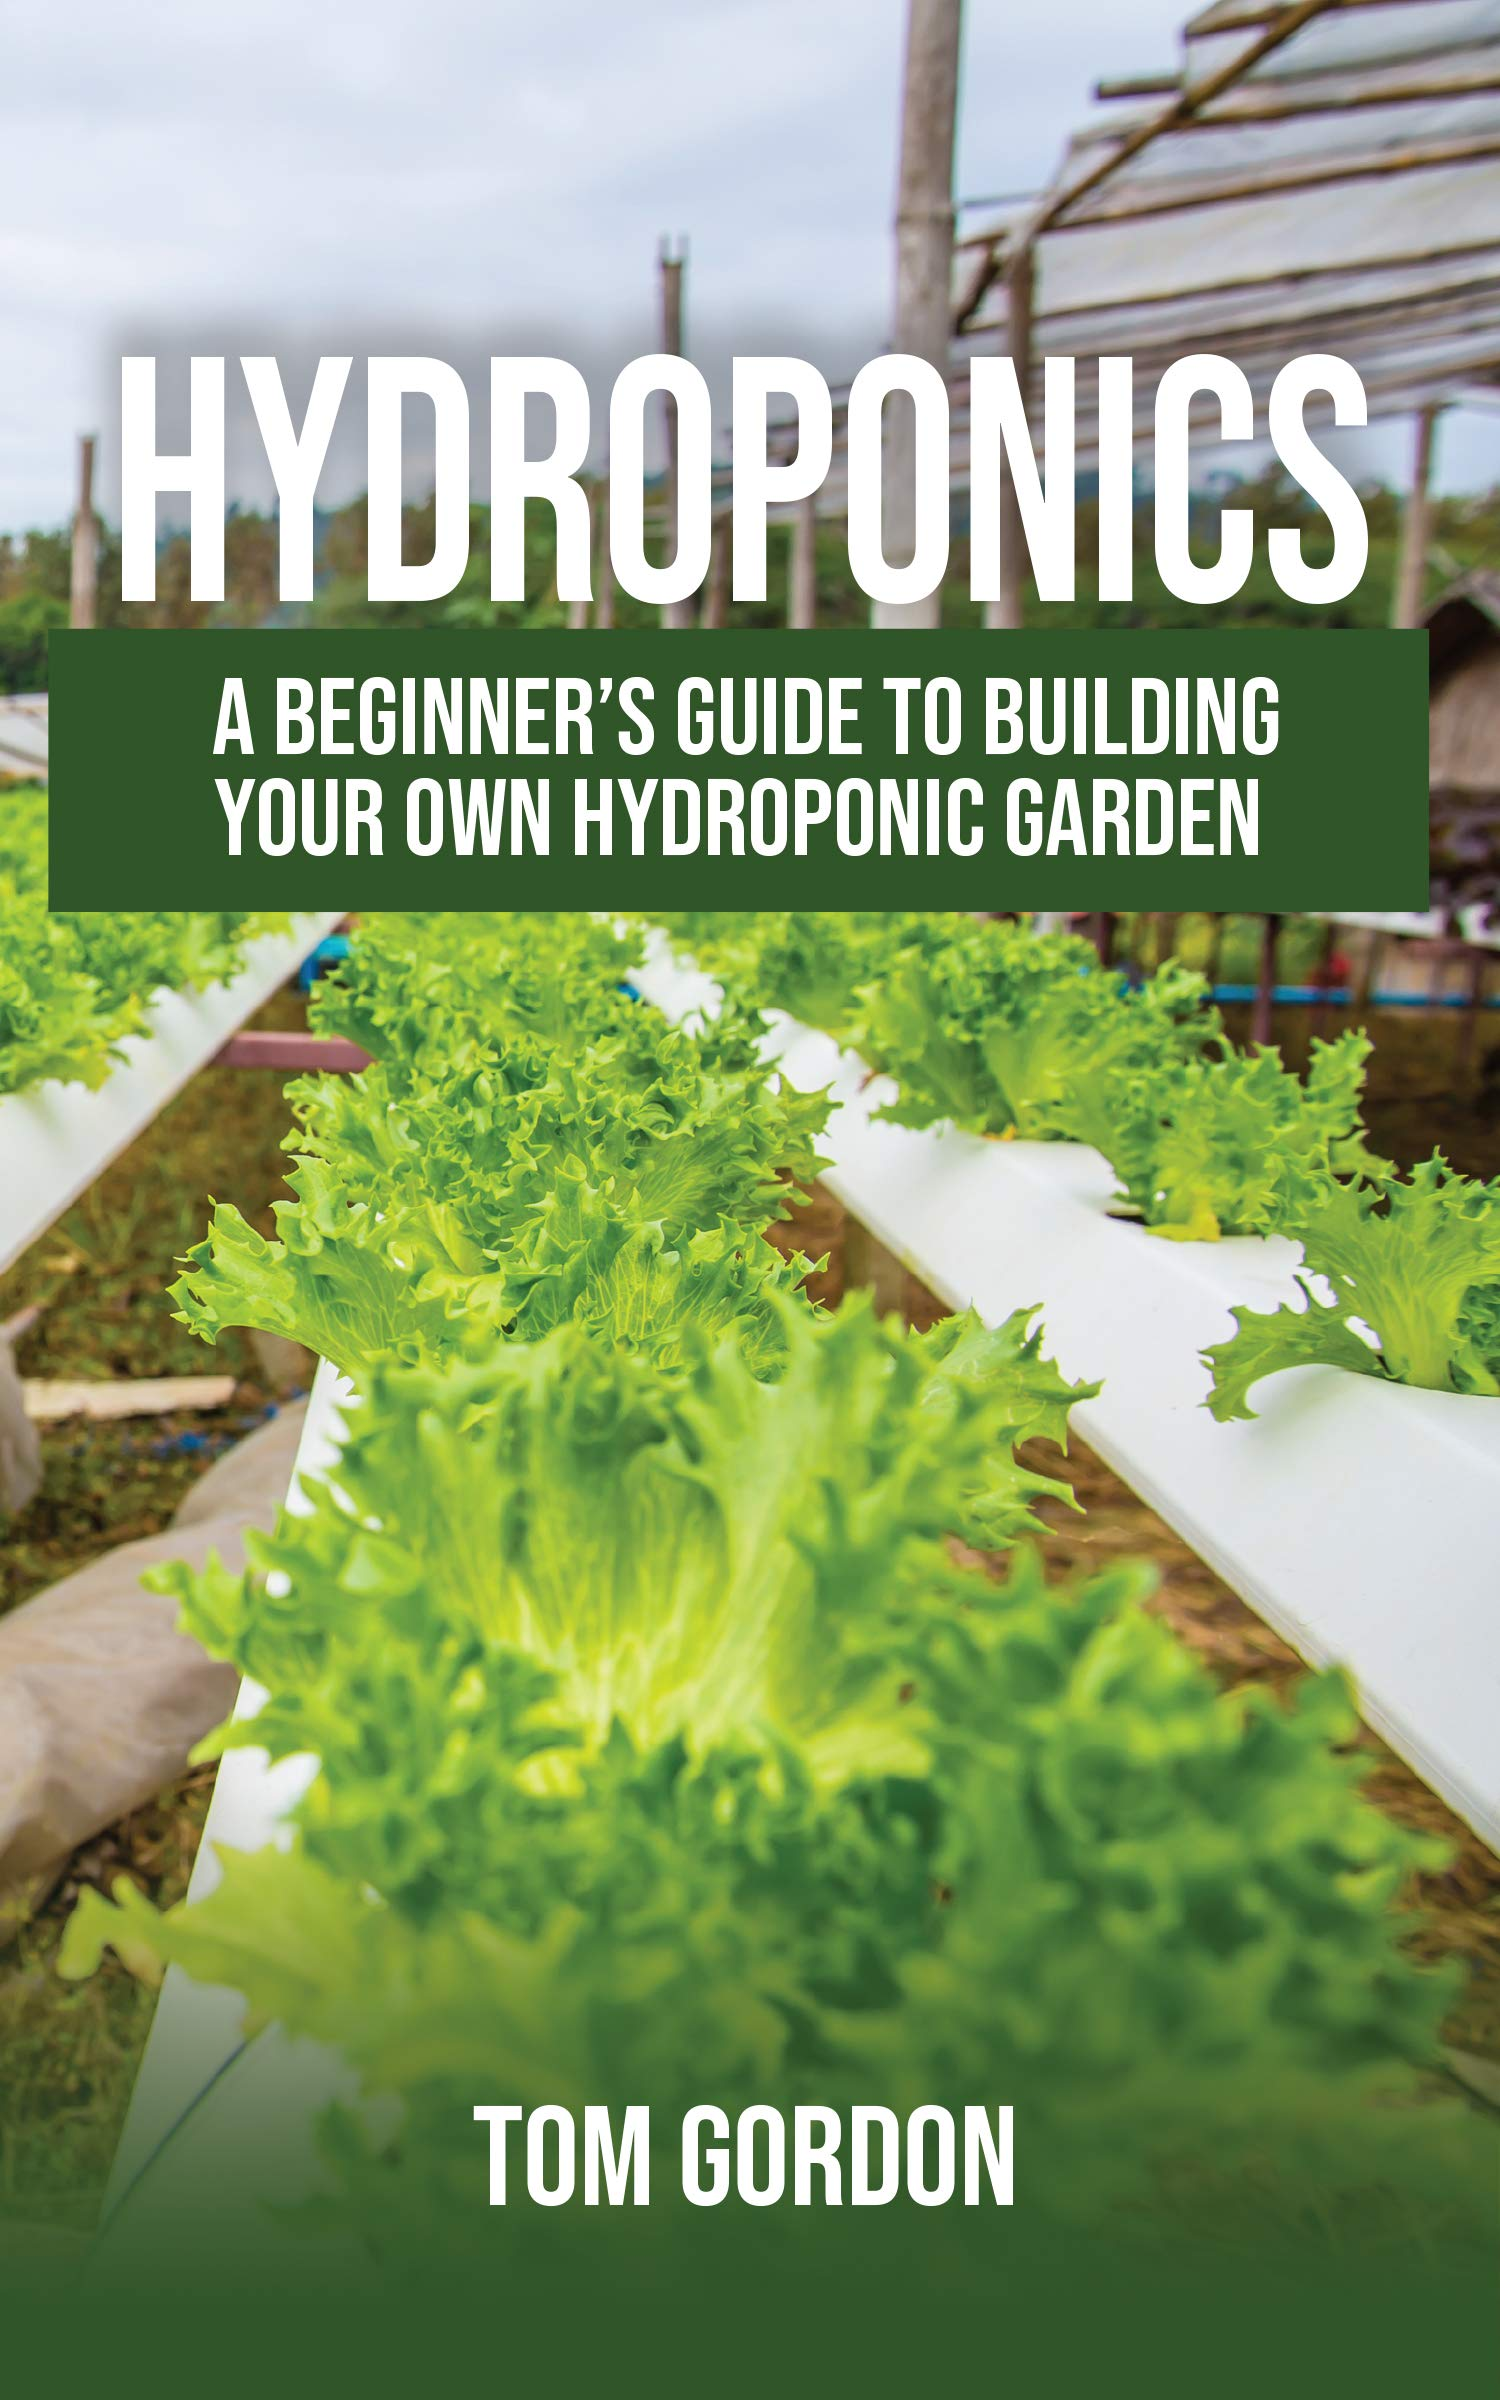 Hydroponics  A Beginner's Guide To Building Your Own Hydroponic Garden  English Edition